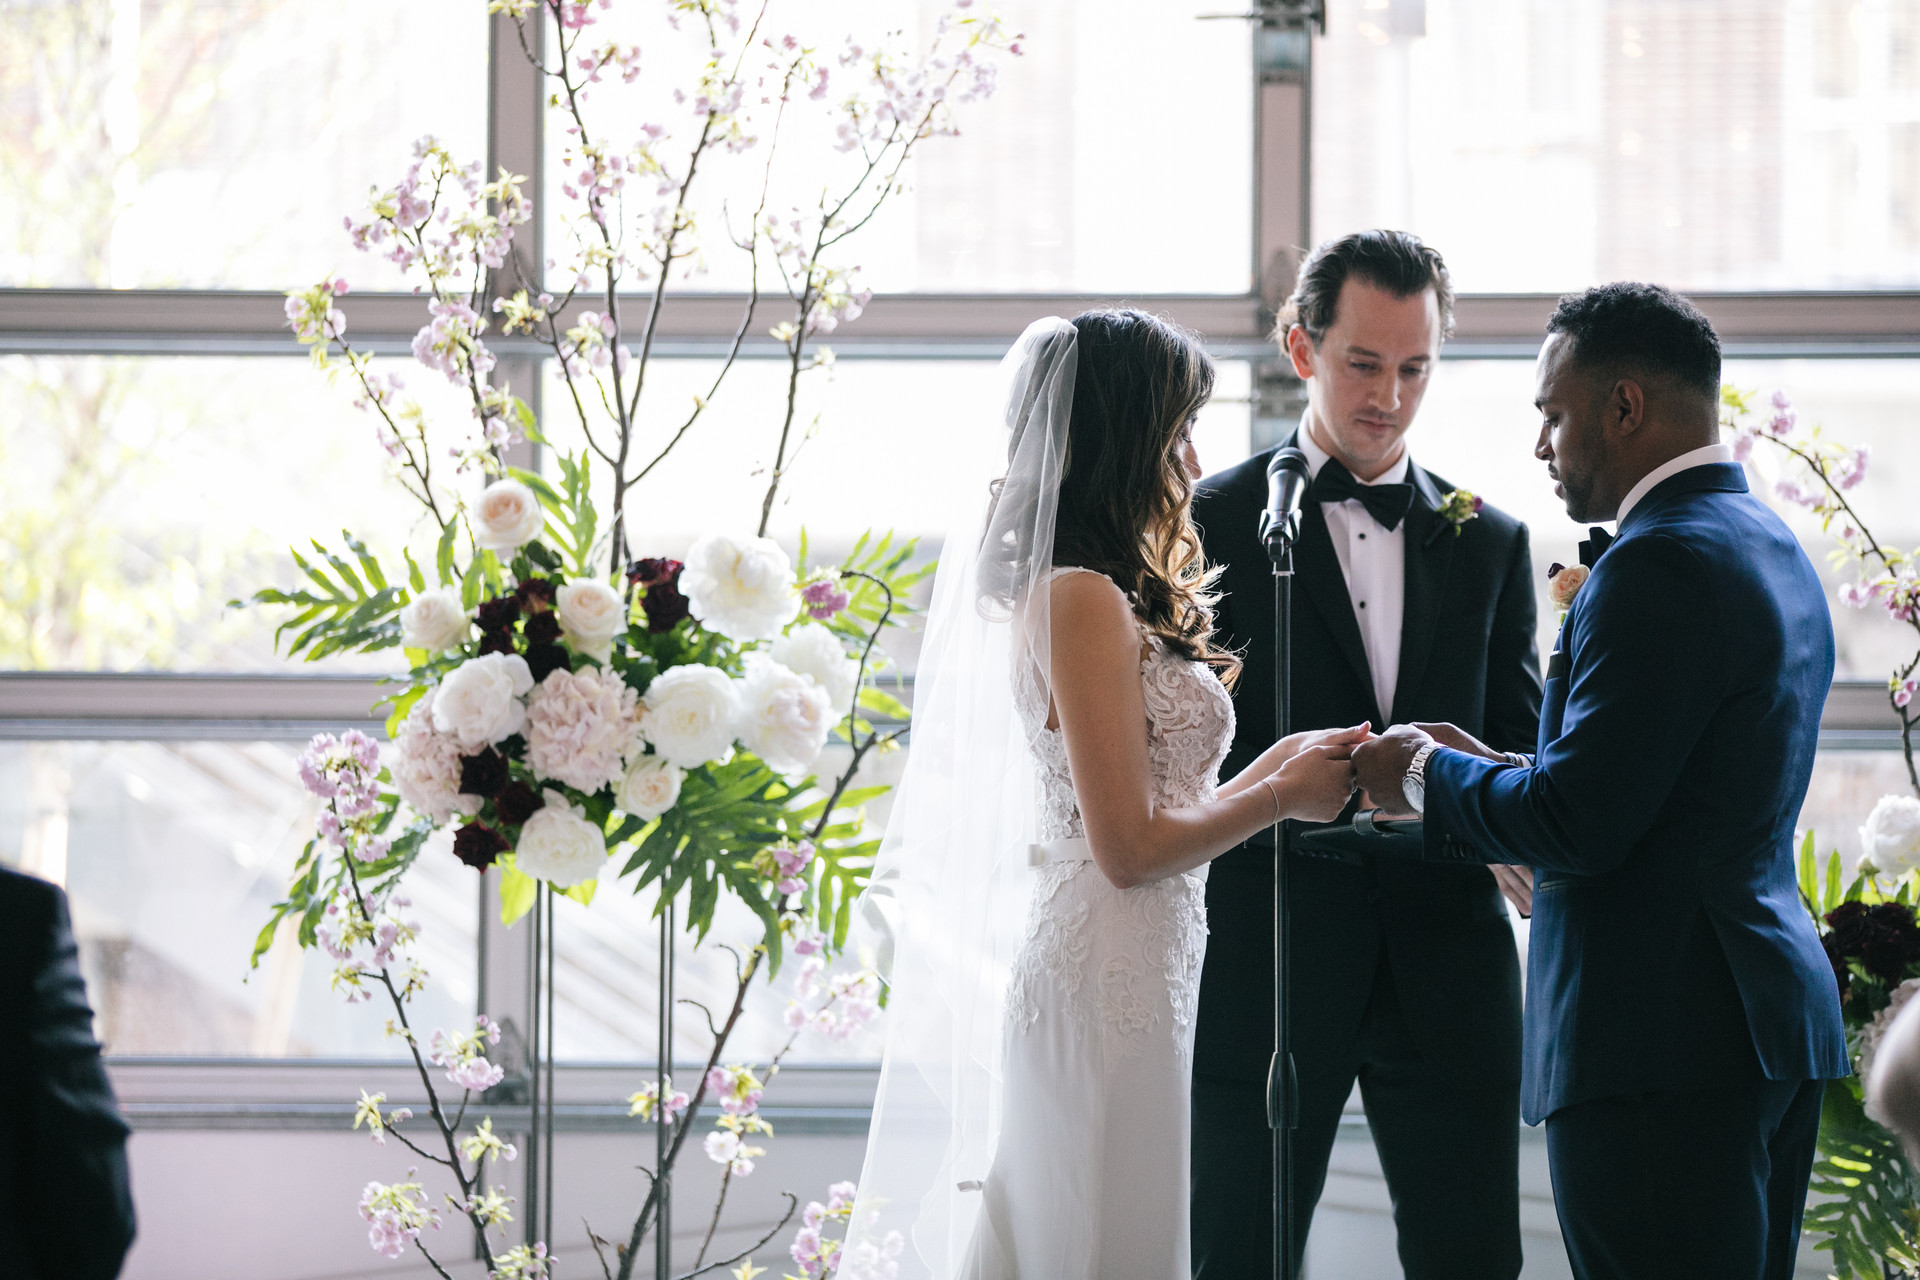 Artists for Humanity Wedding, Fleur and Stitch, Fleur + Stitch, Fleur & Stitch, Zev Fisher Photography